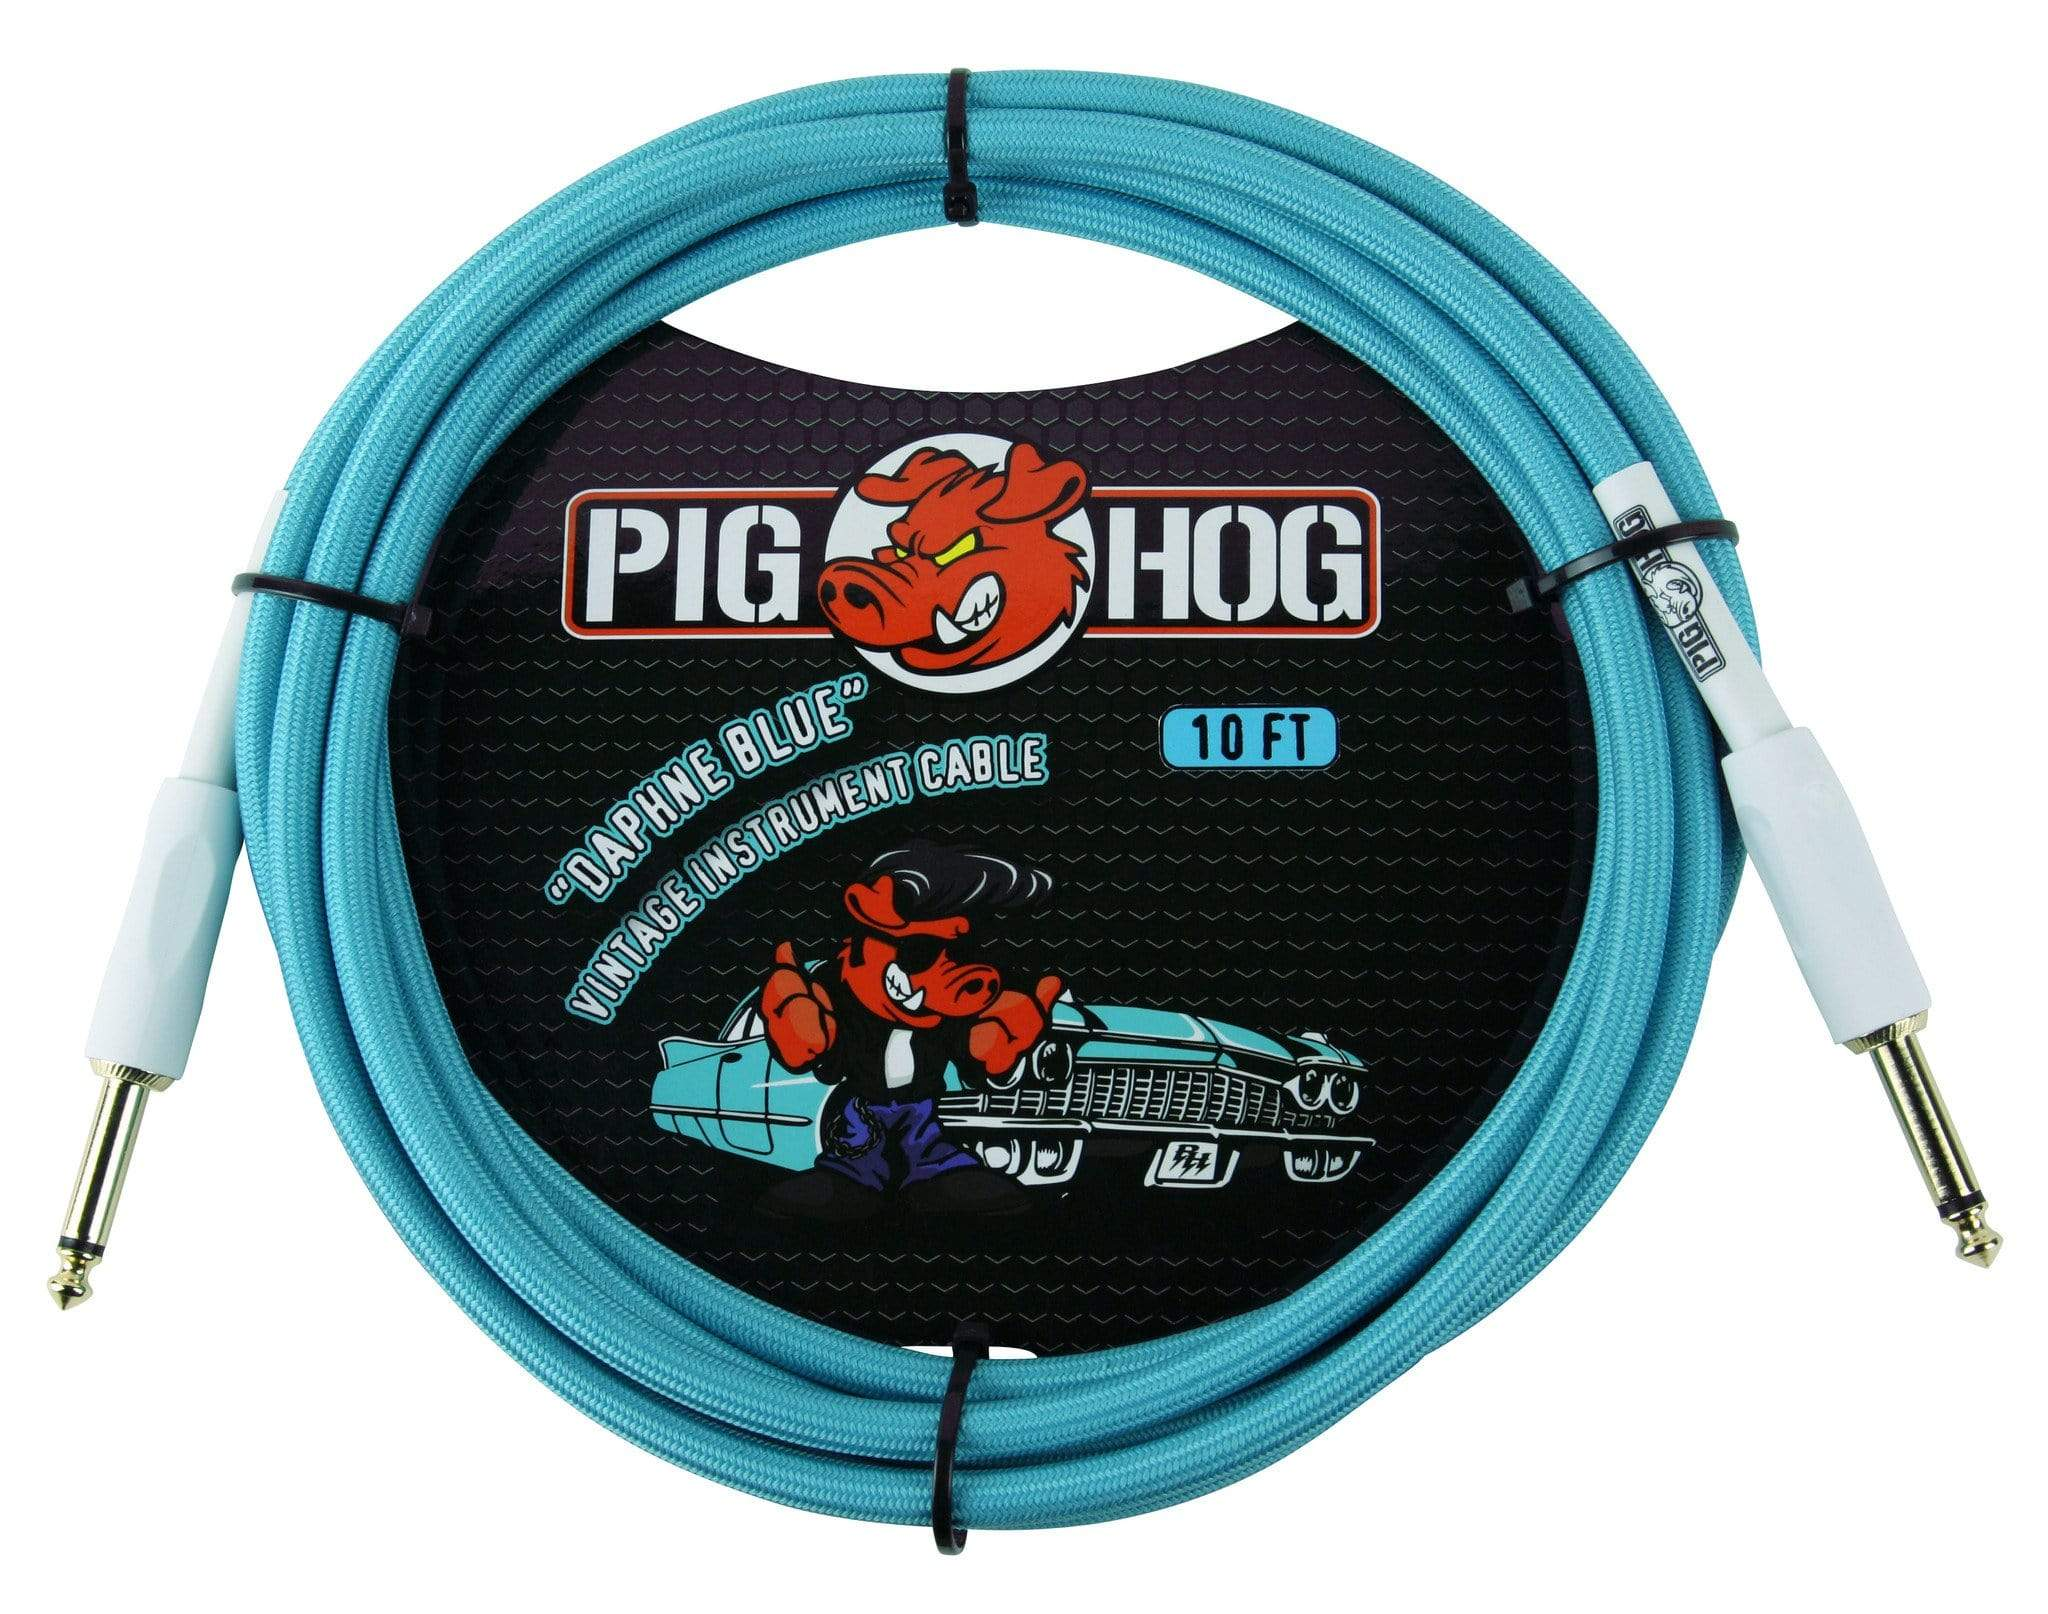 "PIG HOG GUITAR INSTRUMENT CABLES Pig Hog 1/4"" Daphne Blue Guitar Instrument Cable Cord 10ft"